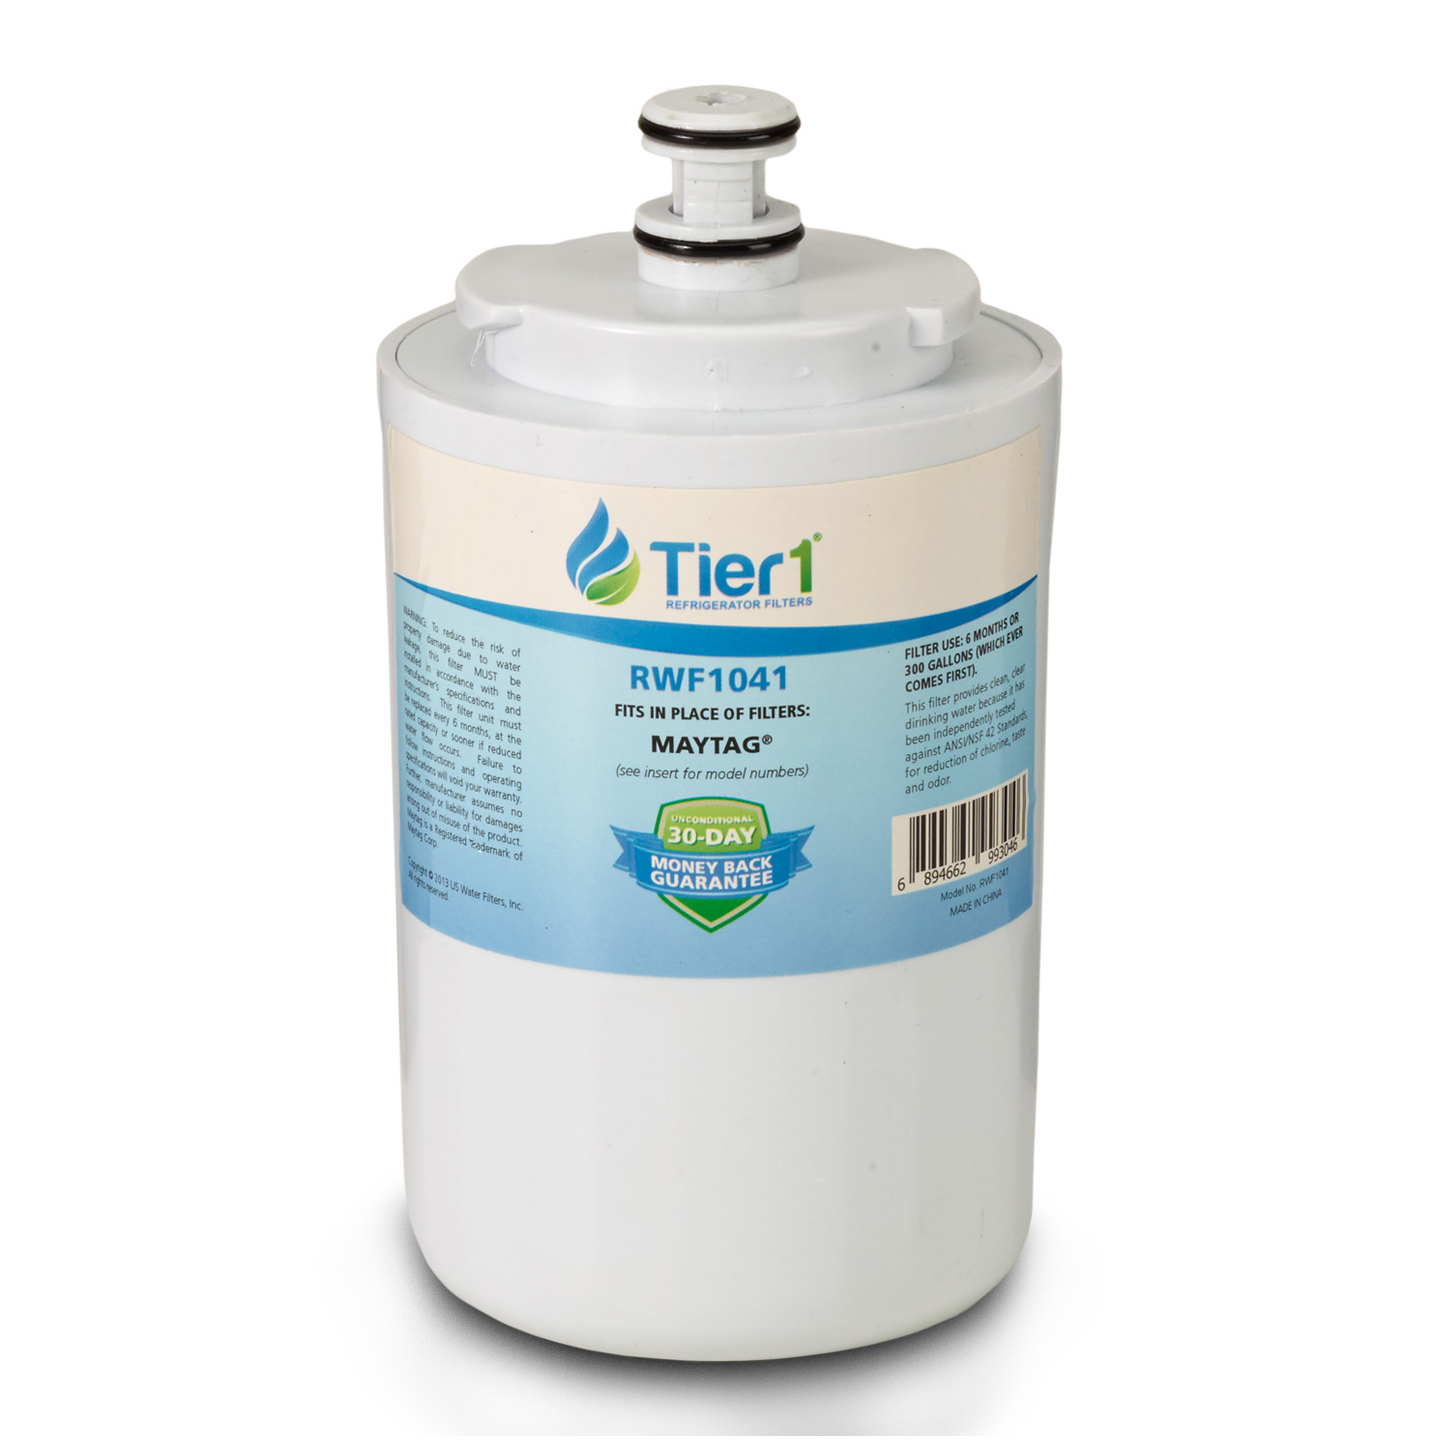 Tier1 EveryDrop EDR7D1 Maytag UKF7003 Refrigerator Water Filter Replacement Comparable TIER1-RWF1041